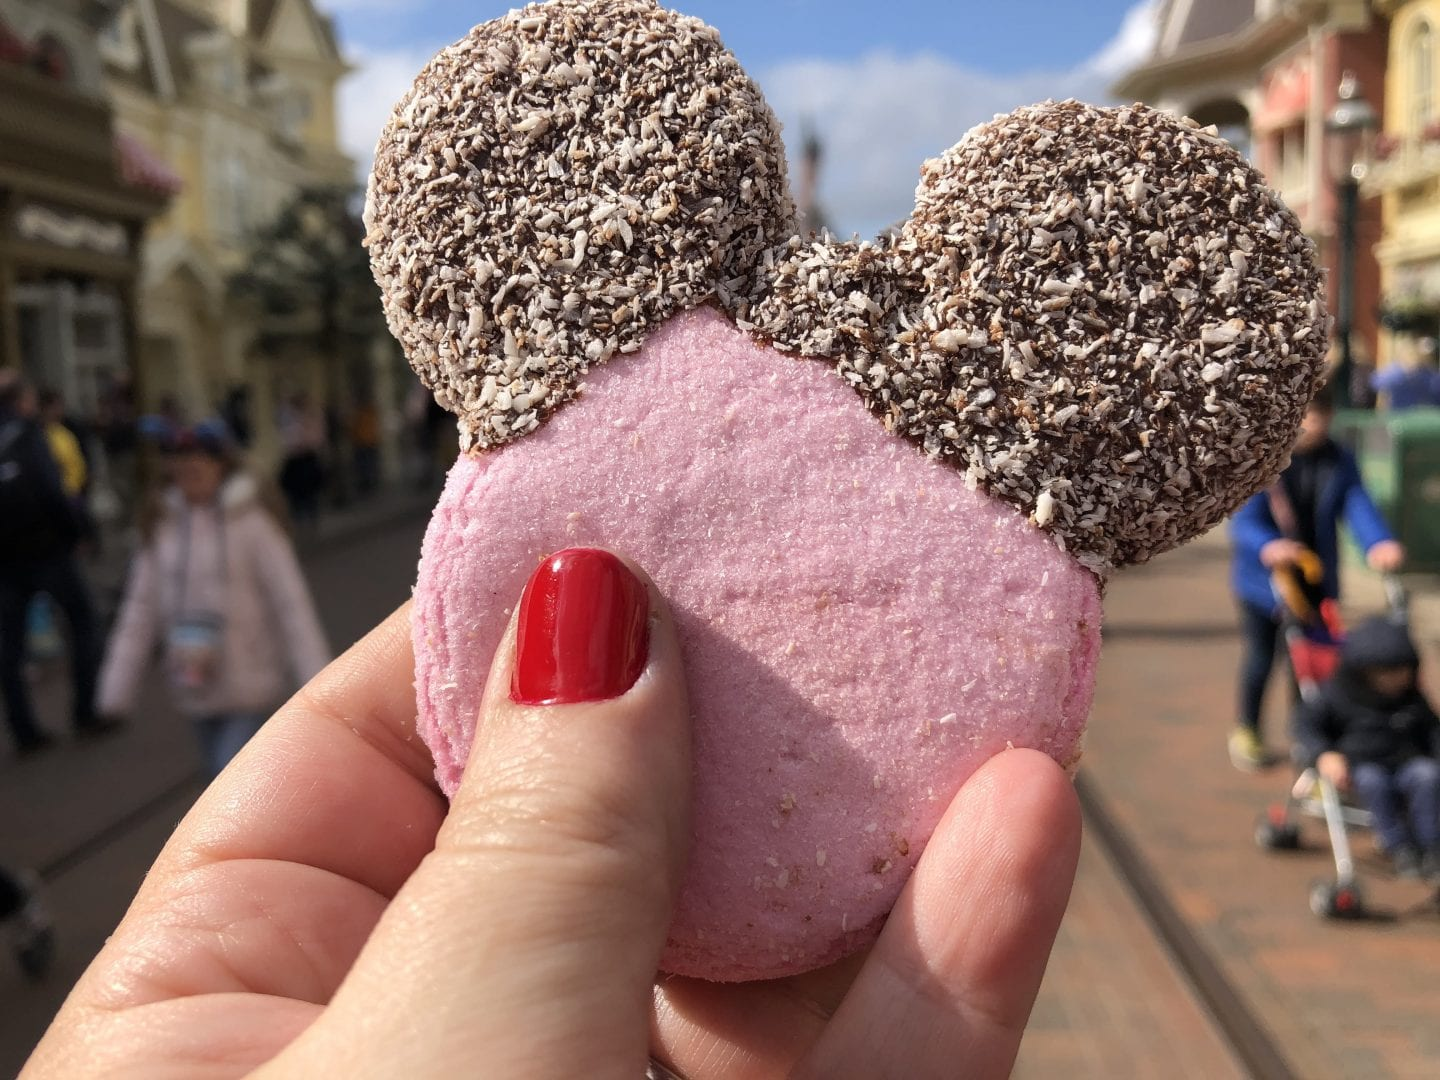 Mickey shaped marshmallow with chocolate dipped ears sprinkled with coconut